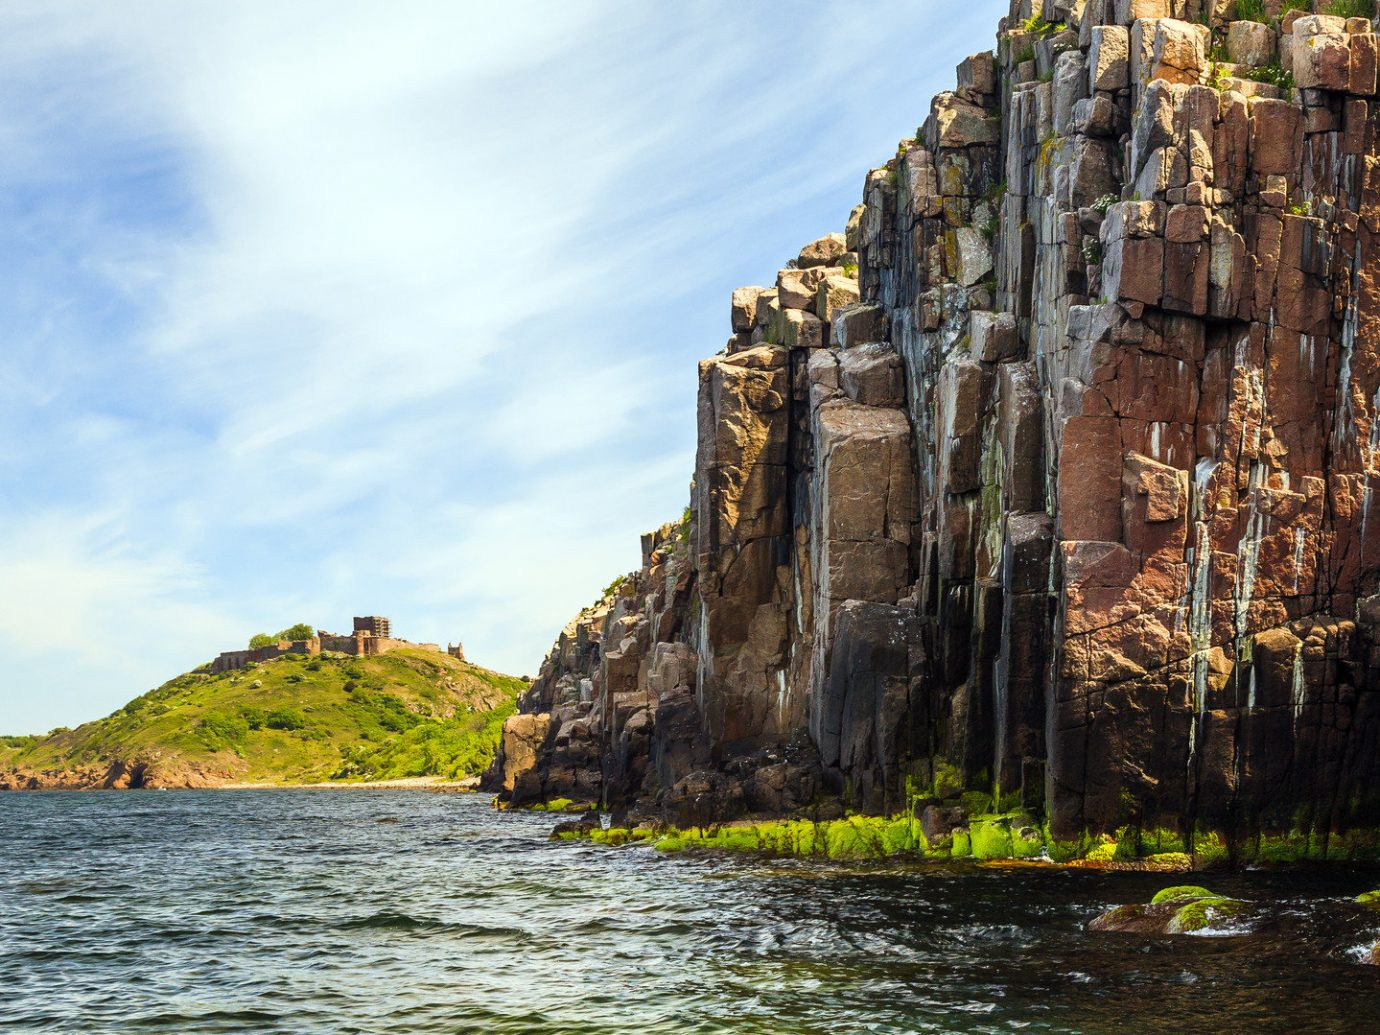 Adventure Luxury Travel Outdoor Activities Trip Ideas outdoor water landform geographical feature rock cliff Coast Nature Sea River terrain bay formation stone